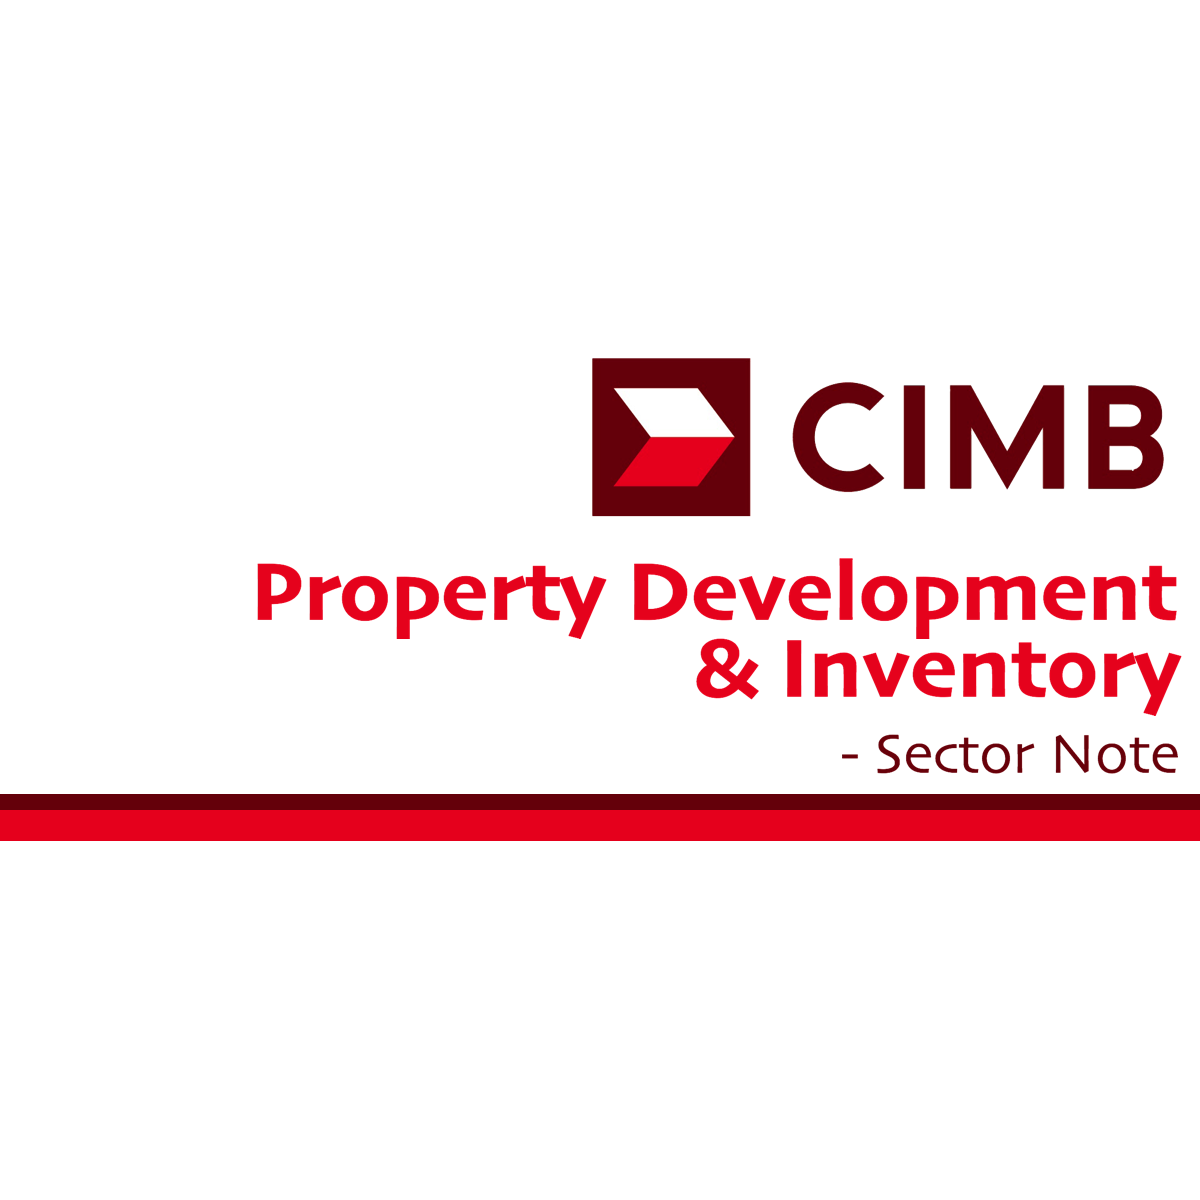 Property Developments & Inventories - CIMB Research 2017-10-02: Uptick In Private Residential Prices